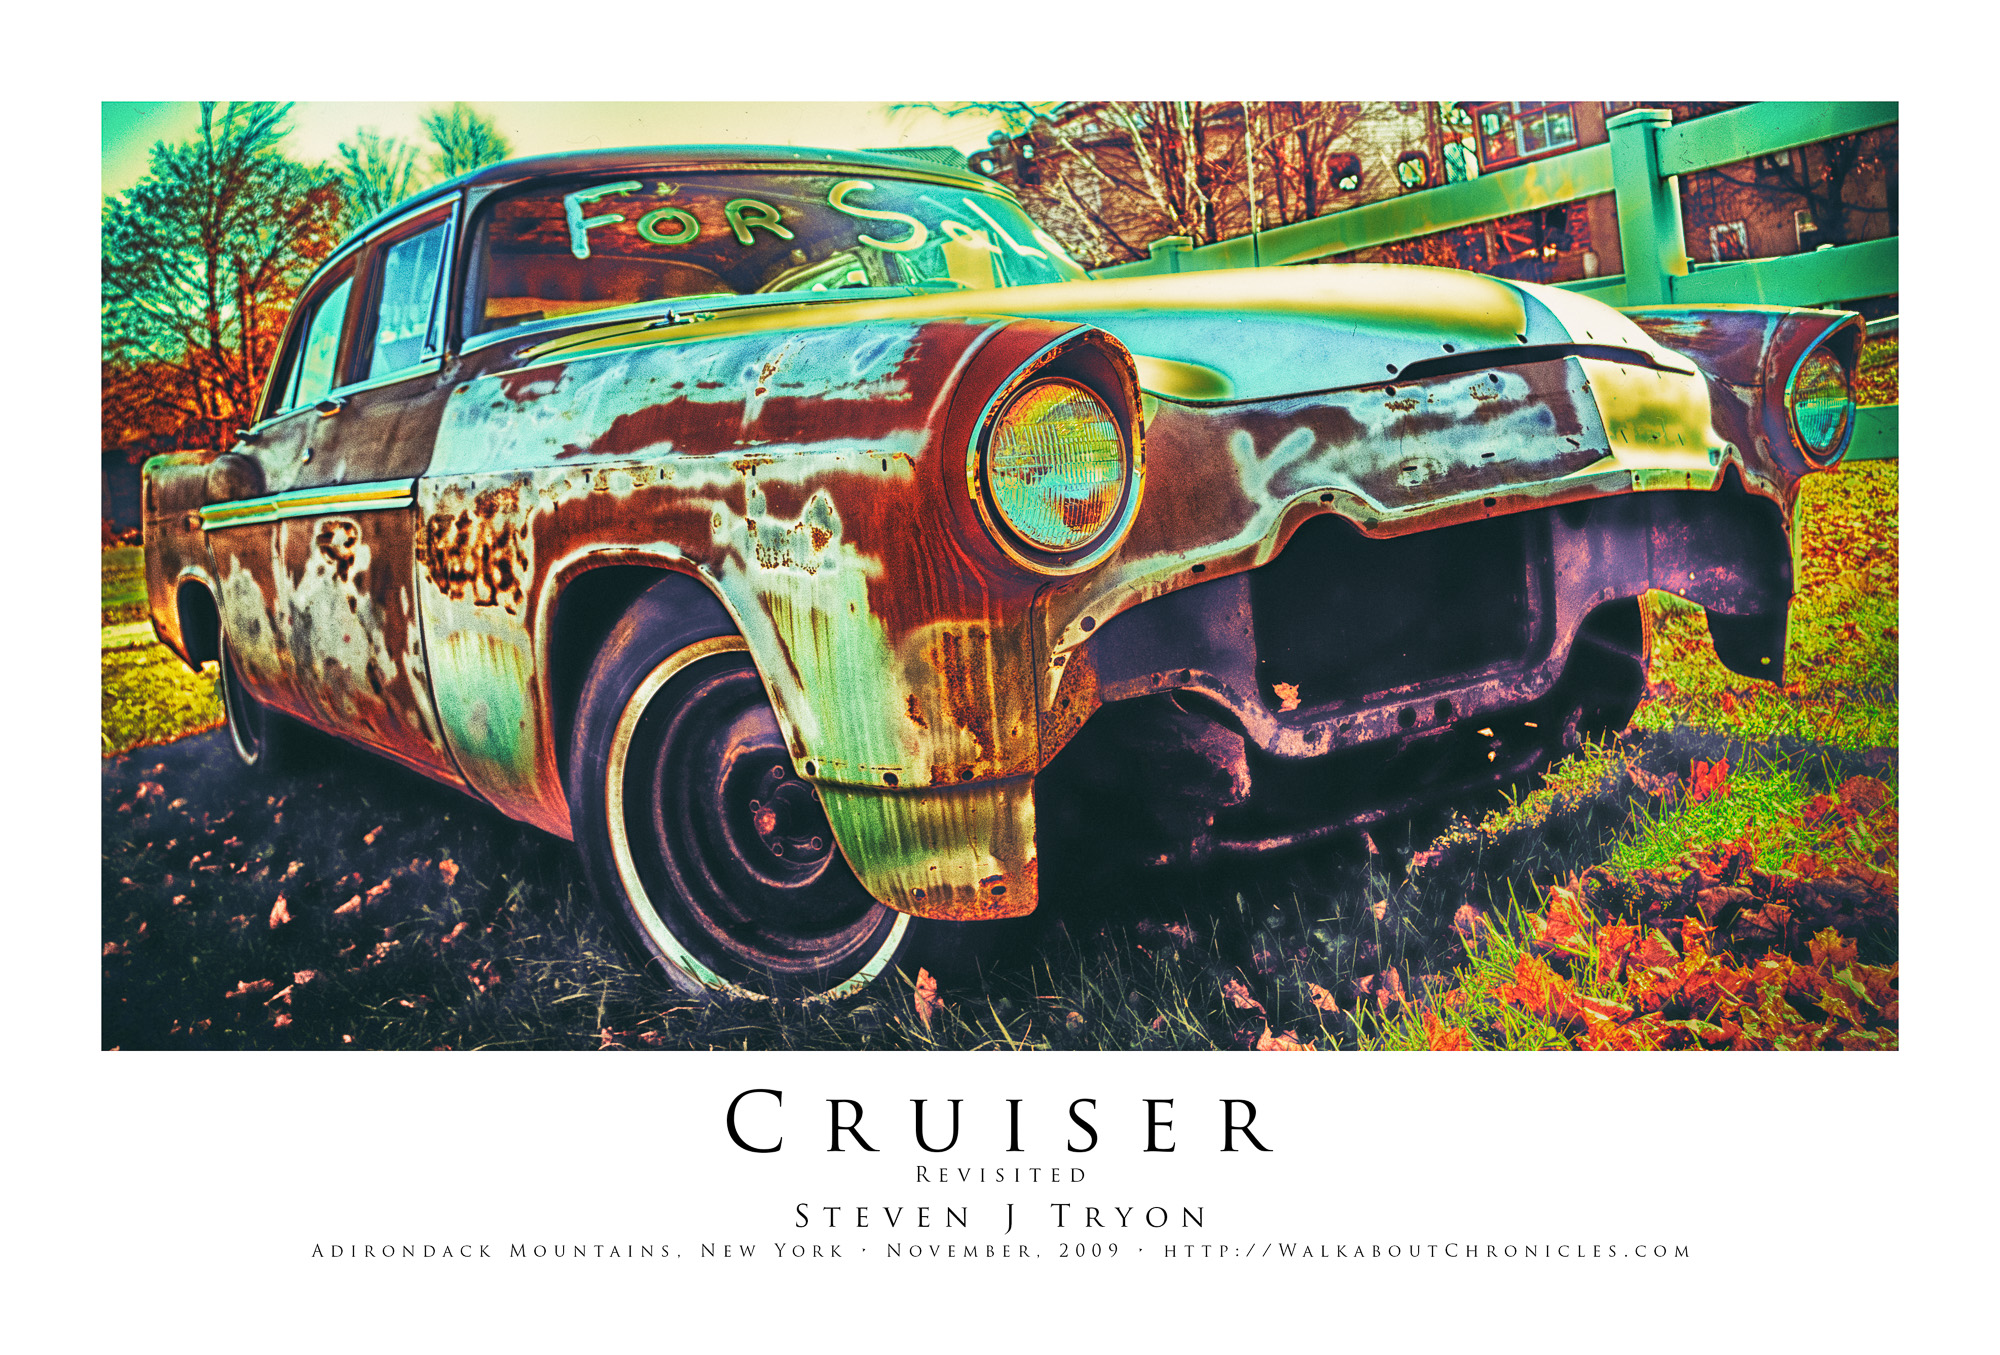 Cruiser (Revisited)